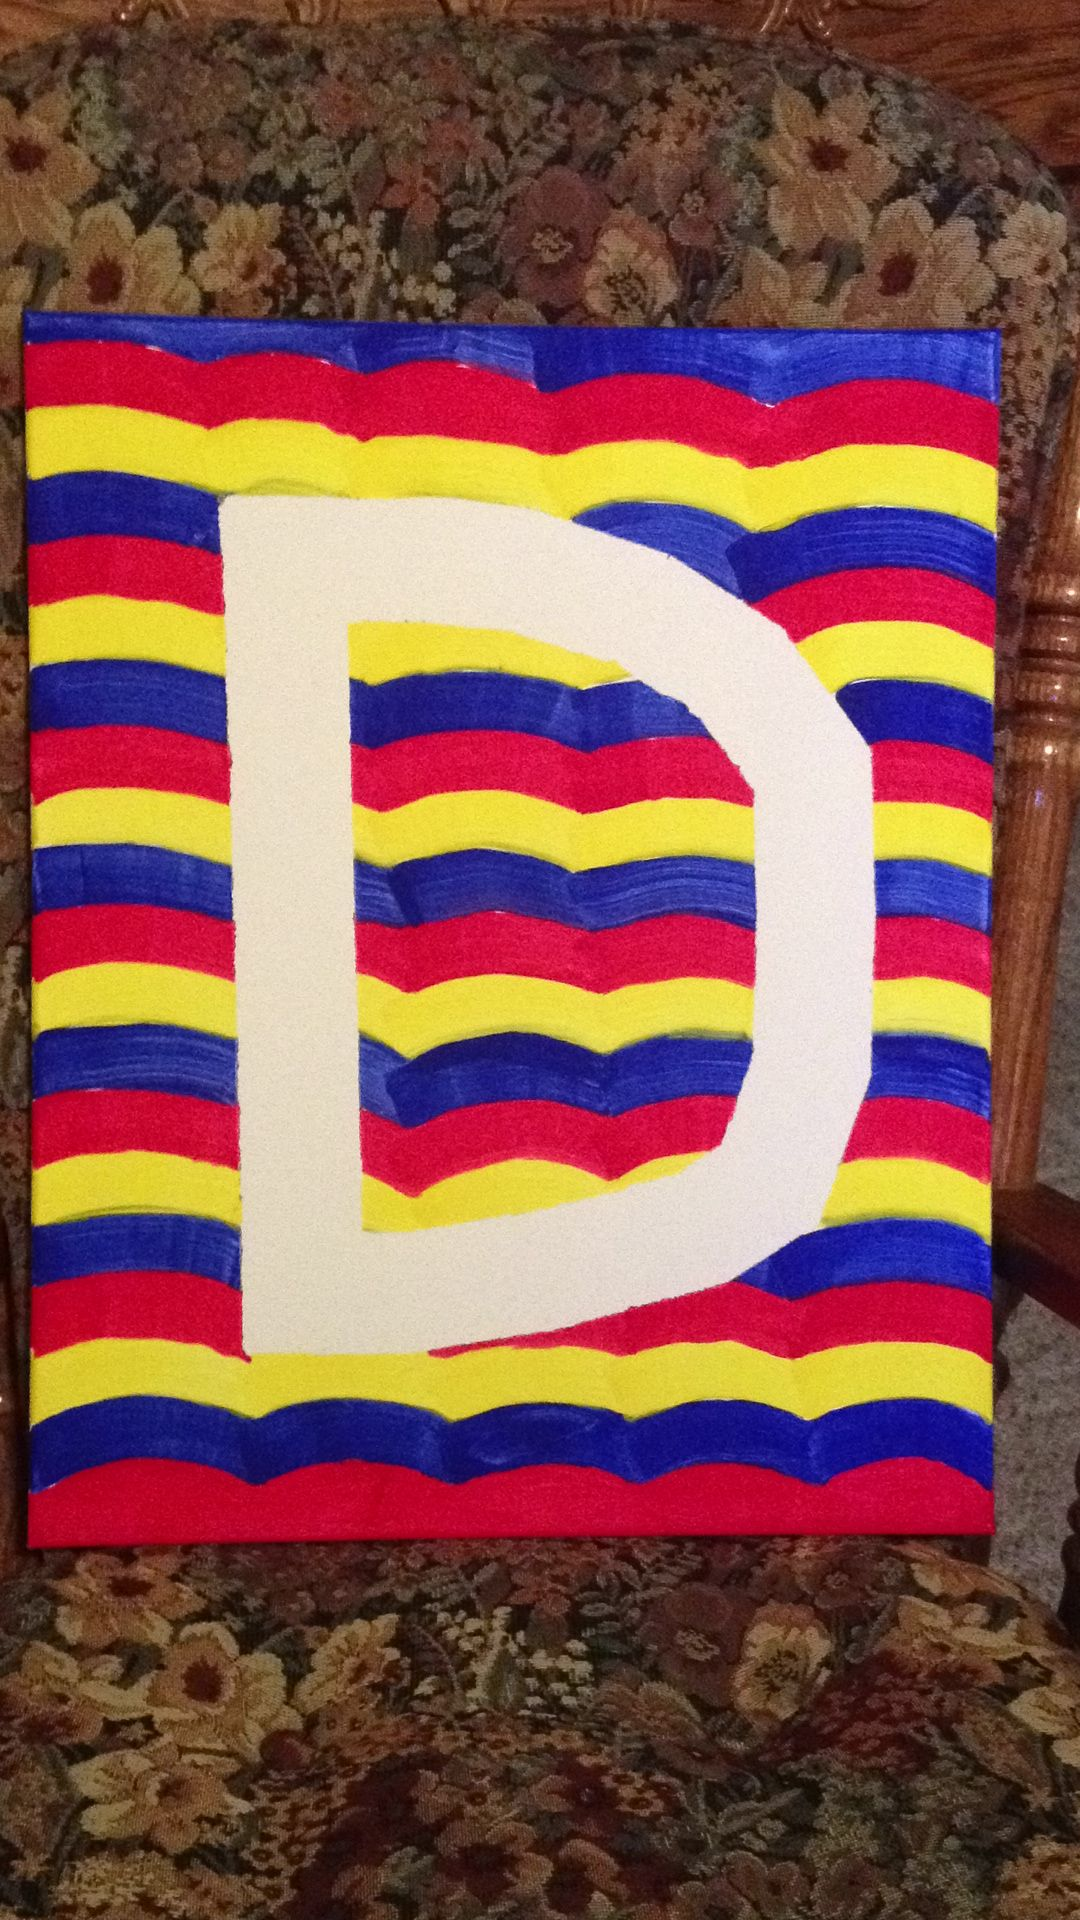 Tape resist painting. My first Pinterest project!!!